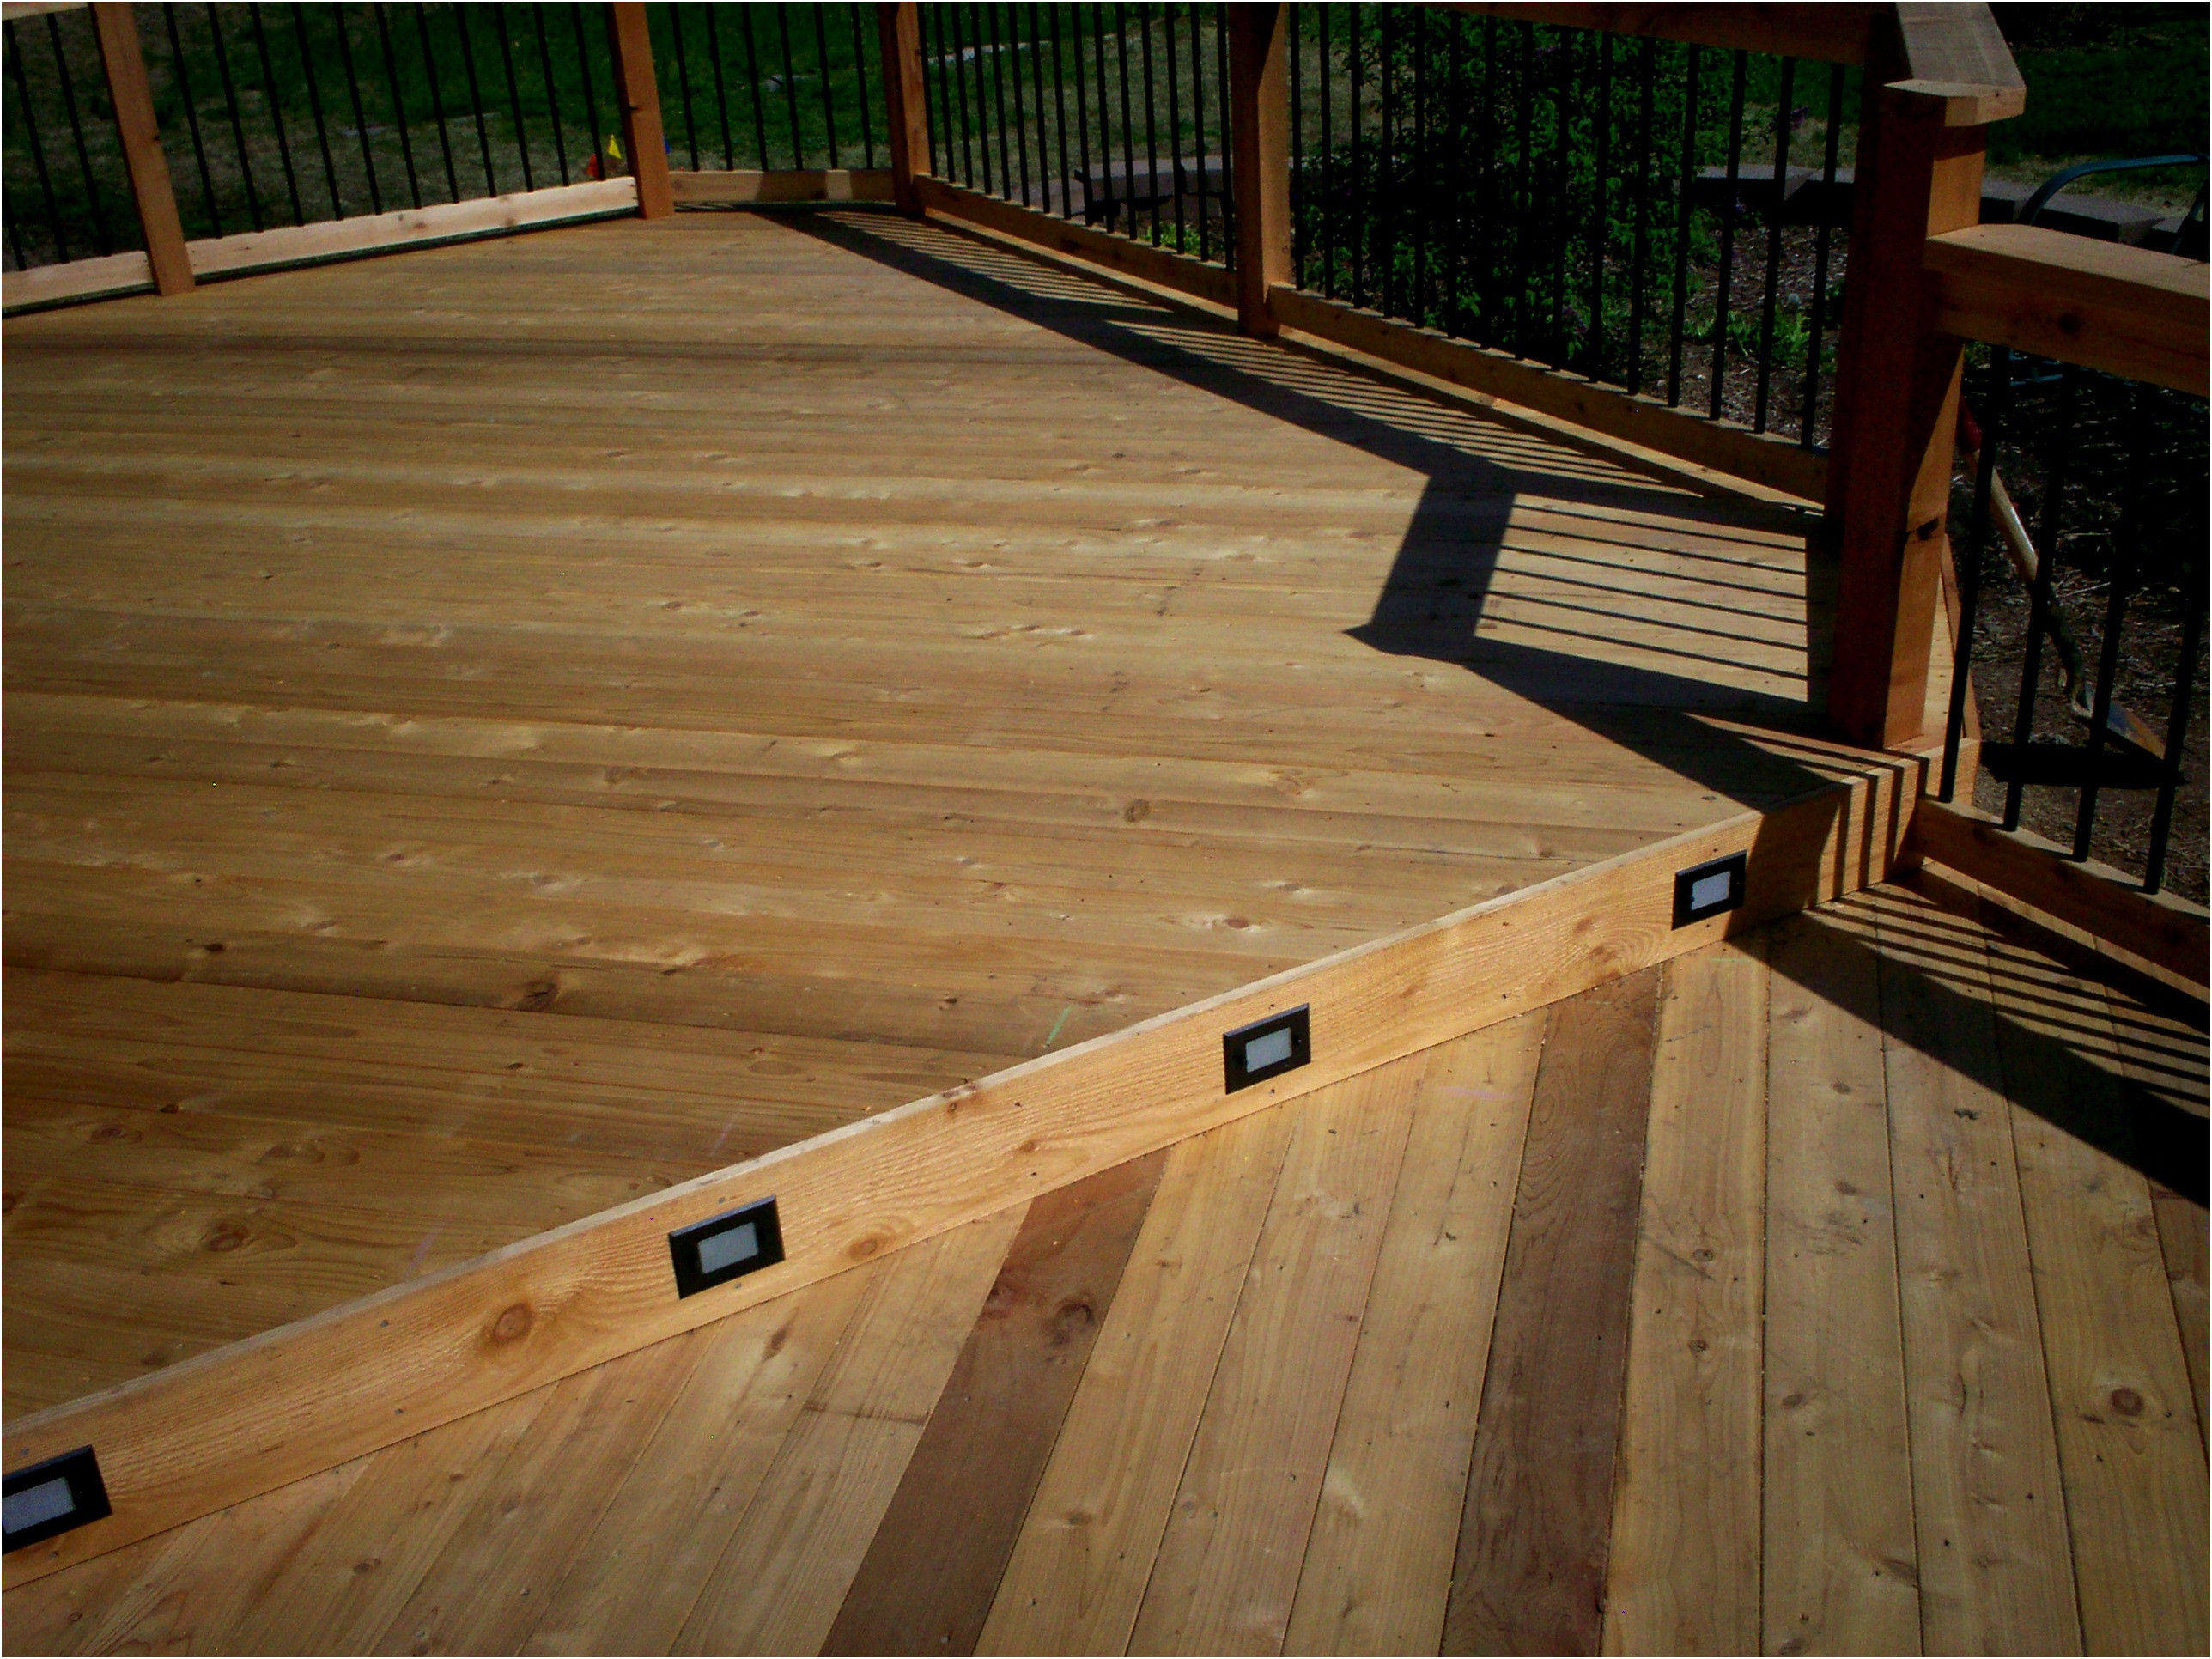 hardwood flooring lowes or home depot of 11 petite stair treads wood home depot interior stairs with regard to stair treads wood home depot lovely lighting outdoor stair lighting rubber treads lowes home depot